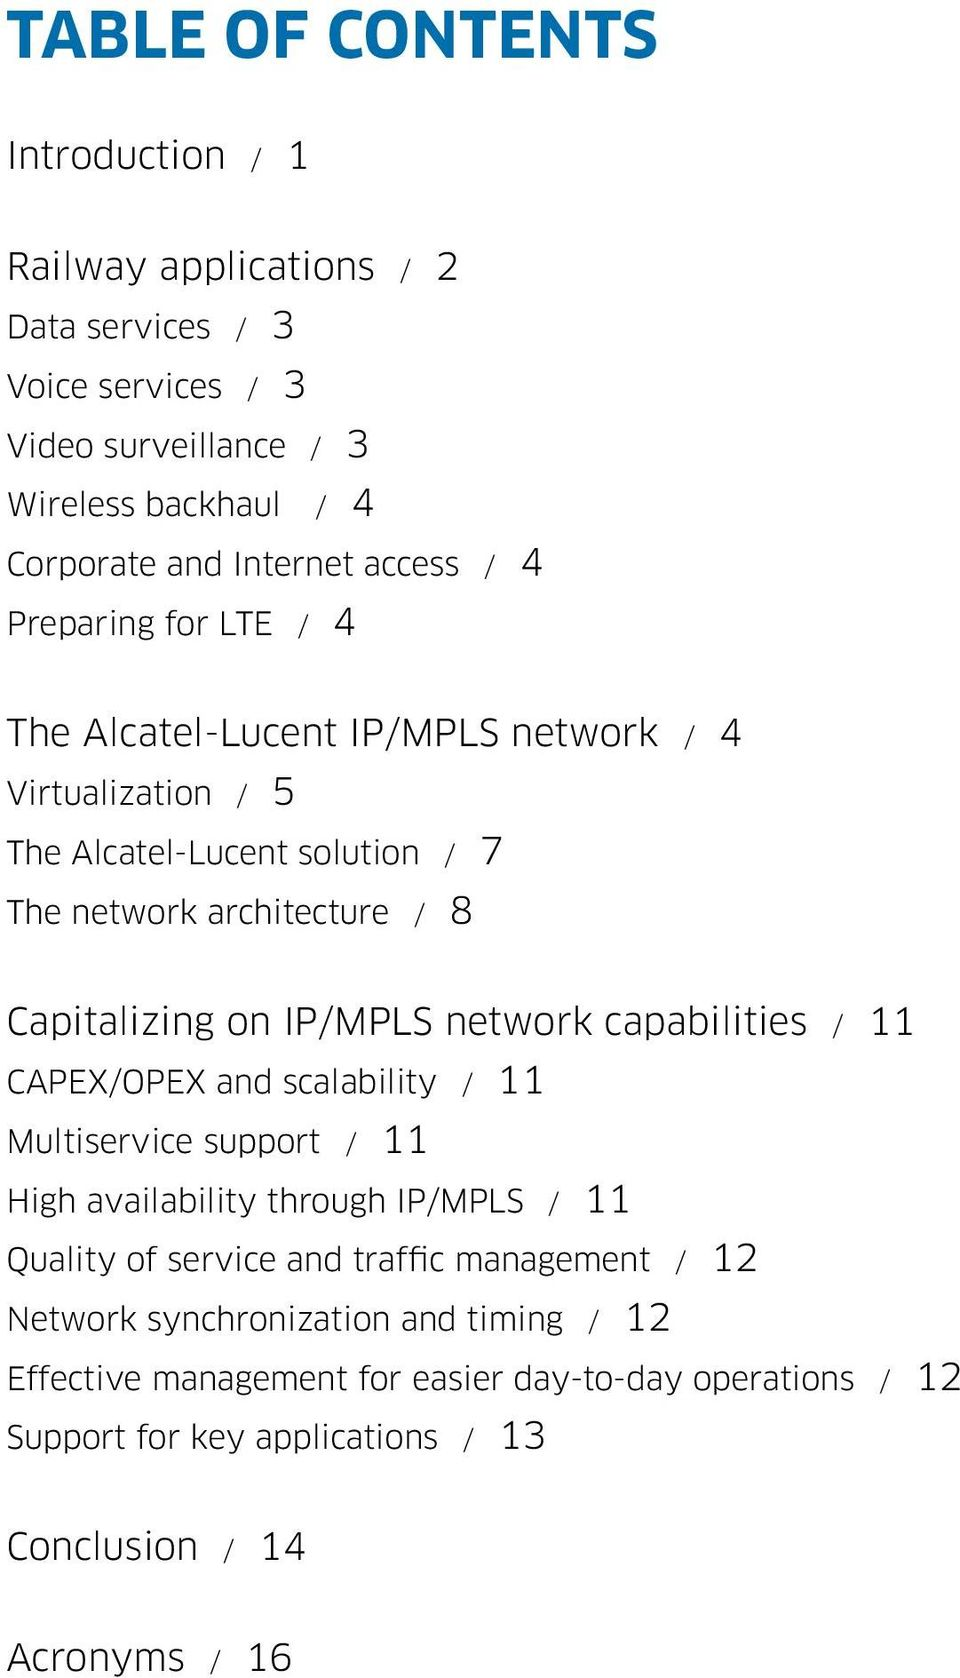 IP/MPLS network capabilities / 11 CAPEX/OPEX and scalability / 11 Multiservice support / 11 High availability through IP/MPLS / 11 Quality of service and traffic